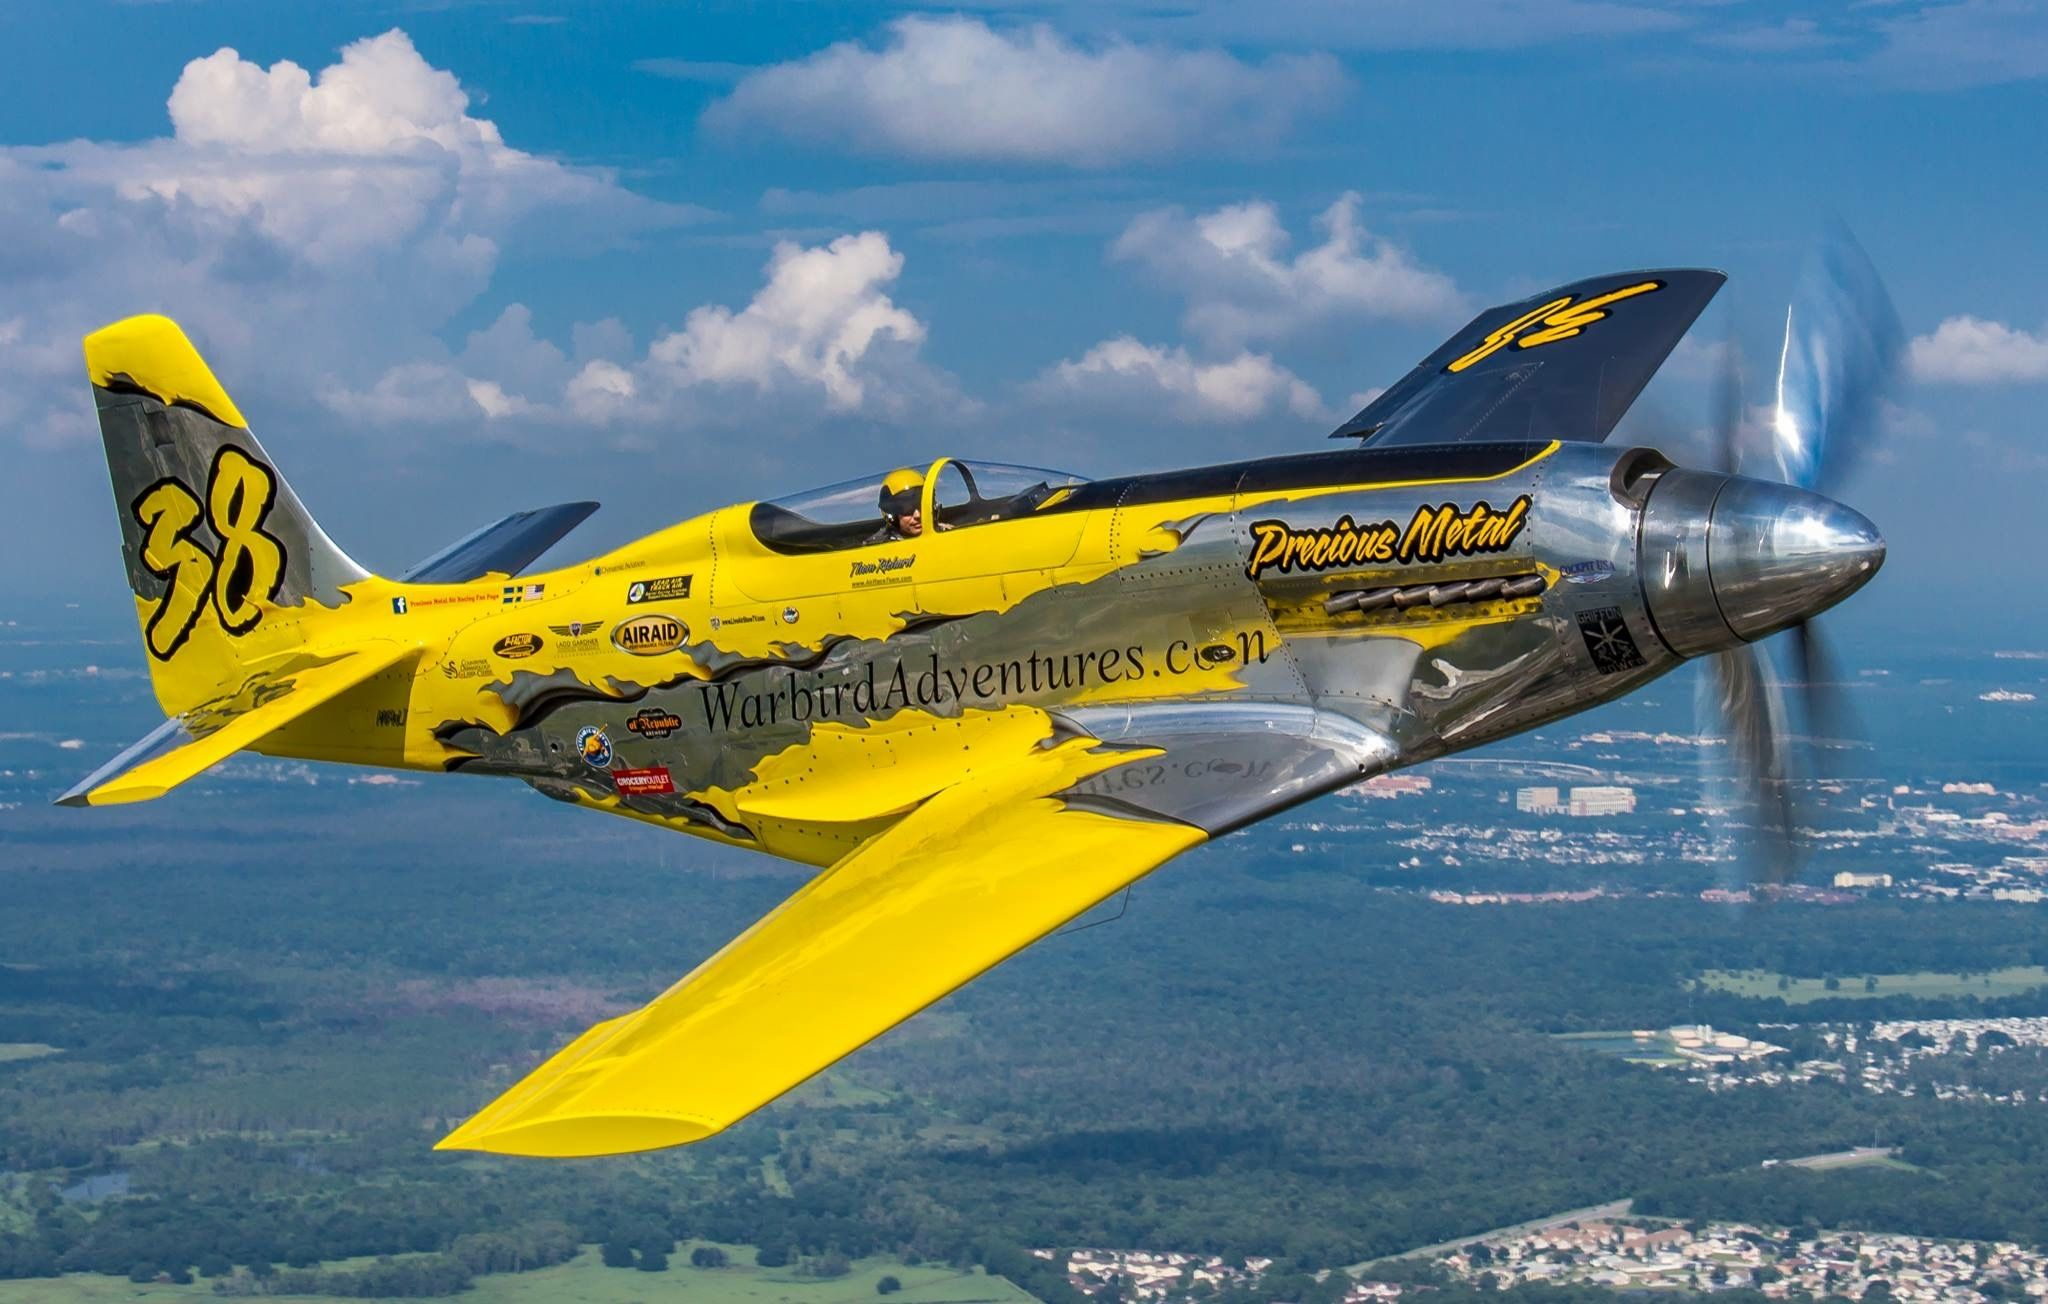 Pin by James Sheppard on Air race in 2020 (With images